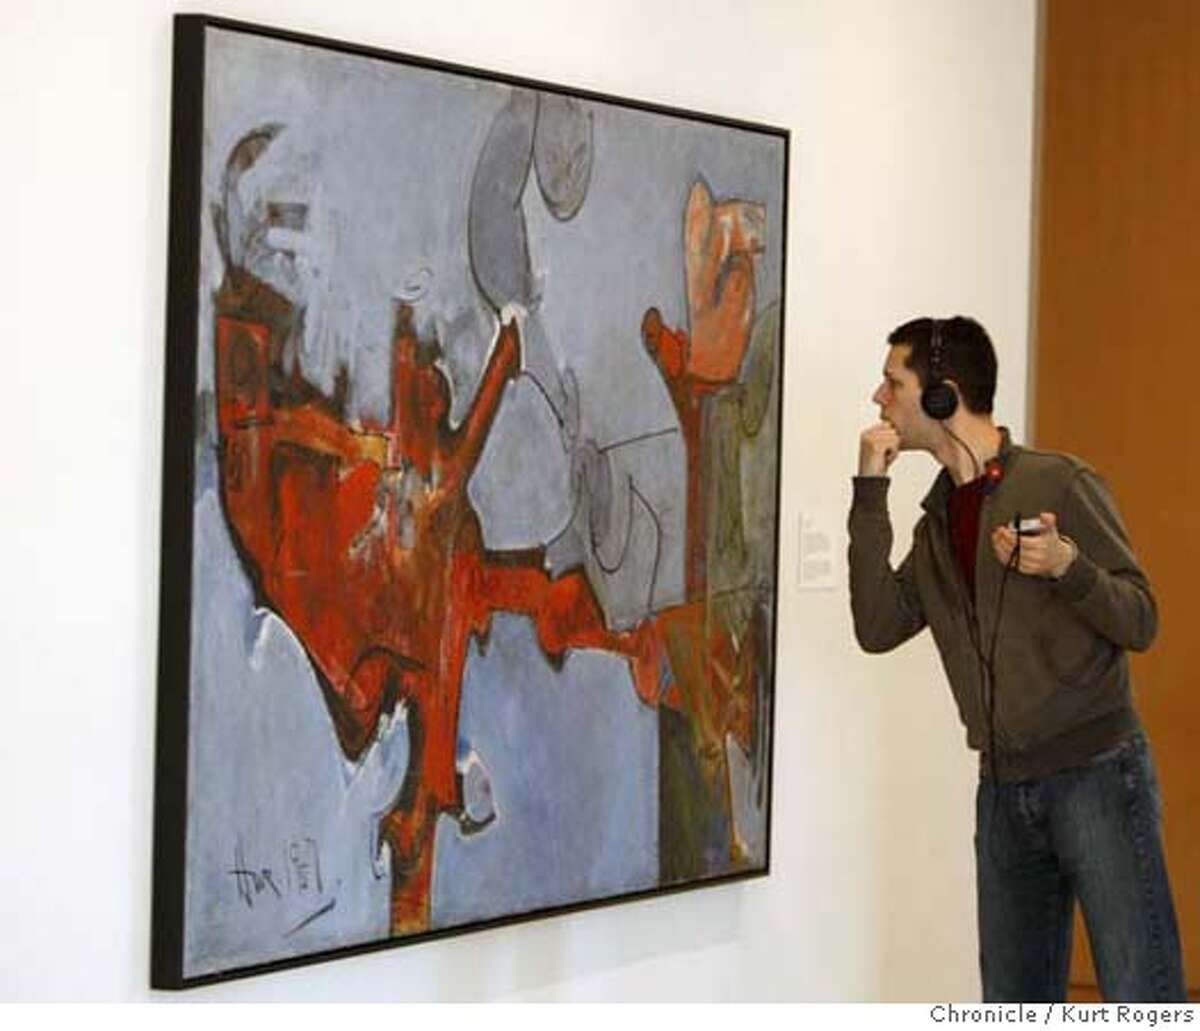 ###Live Caption:Heith Didier of Portland Oregon looks at Bird Lover a painting by Hassel Smith on display at the San Jose Art Museum on Saturday Mar 1,2008 Photo By Kurt Rogers / San Francisco Chronicle###Caption History:Heith Didier of Portland Oregon looks at Bird Lover a painting by Hassel Smith on display at the San Jose Art Museum on Saturday Mar 1,2008 Photo By Kurt Rogers / San Francisco Chronicle###Notes:Artist Hassel Smith died last year. Friends and family get together to celebrate his art. Heith Didier (cq)###Special Instructions:MANDATORY CREDIT FOR PHOTOG AND SAN FRANCISCO CHRONICLE/NO SALES-MAGS OUT